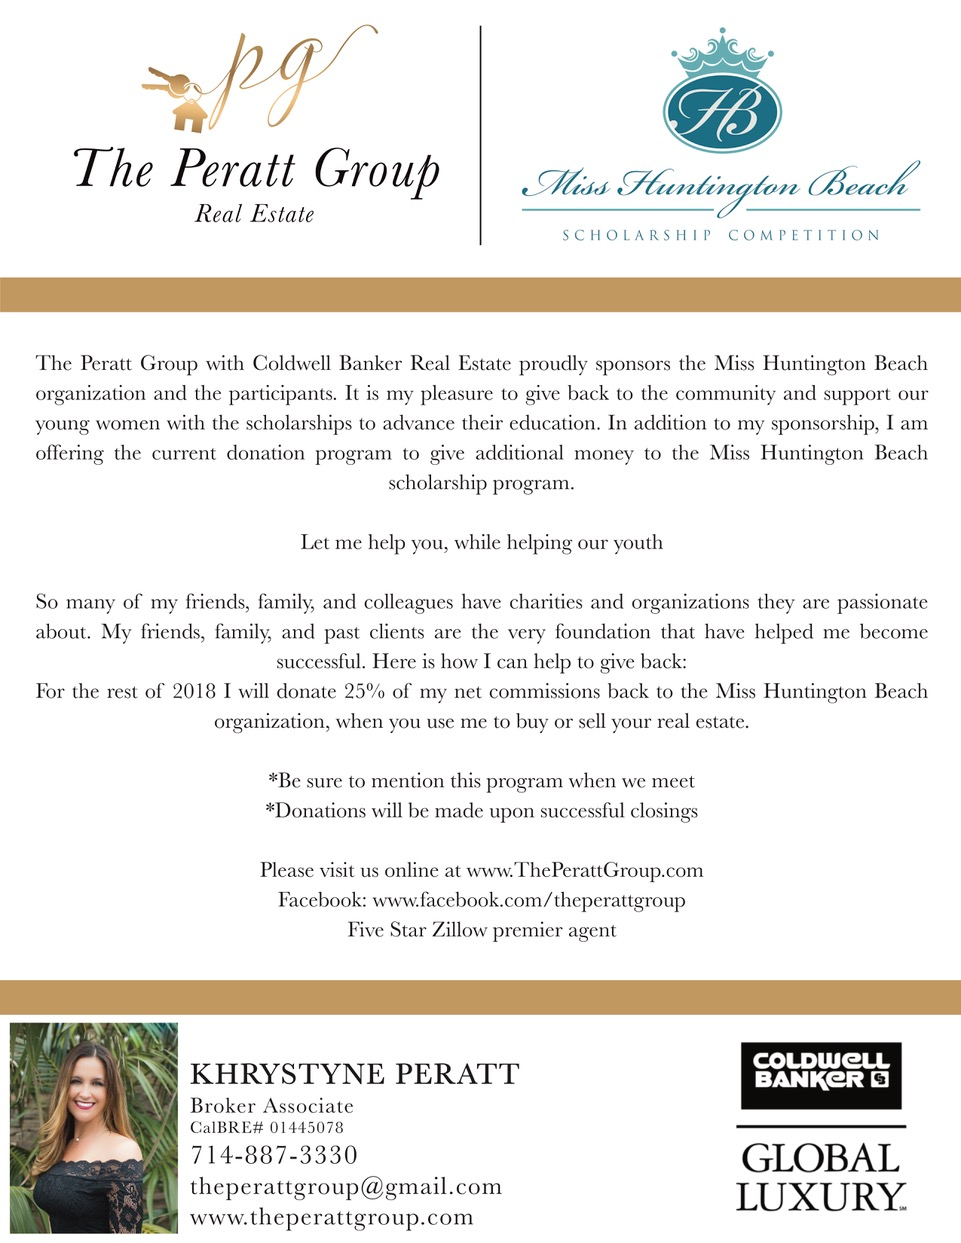 Events | Khrystyne Peratt<br>Coldwell Banker Residential